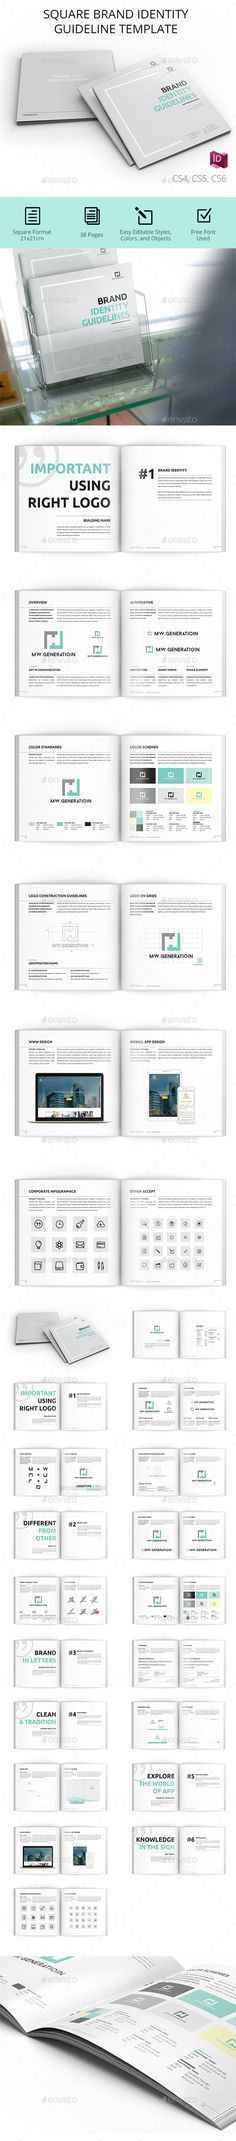 Brand Manual Template InDesign INDD - 48 Pages, A4 | Diseño ...